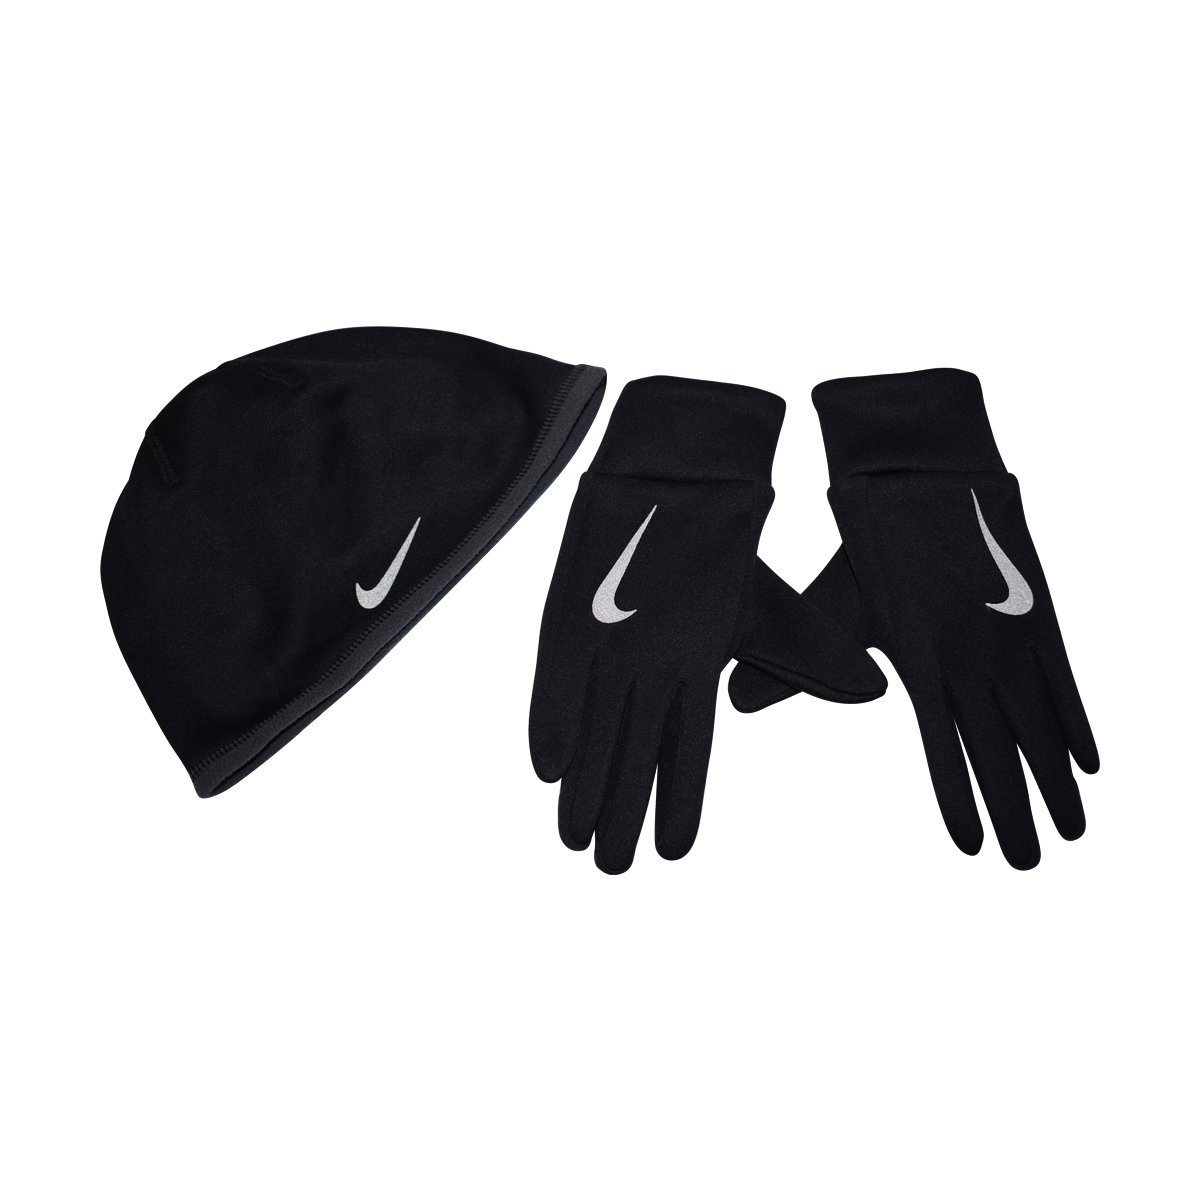 NIKE Therma Women's Hat and Glove Set for Running, Cold Weather (Black, XS/S)